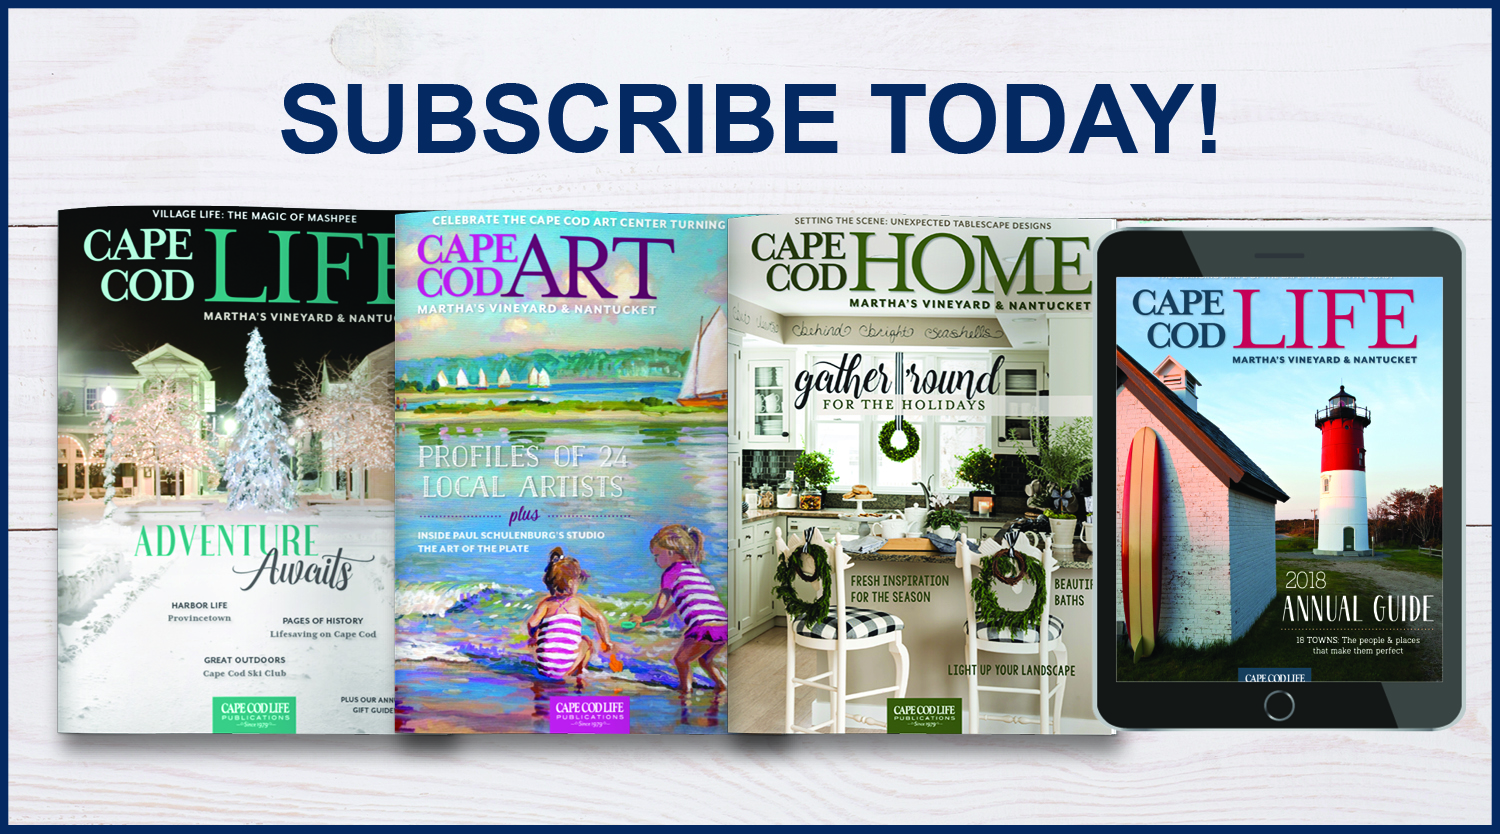 Subscribe to Cape Cod Life Magazine